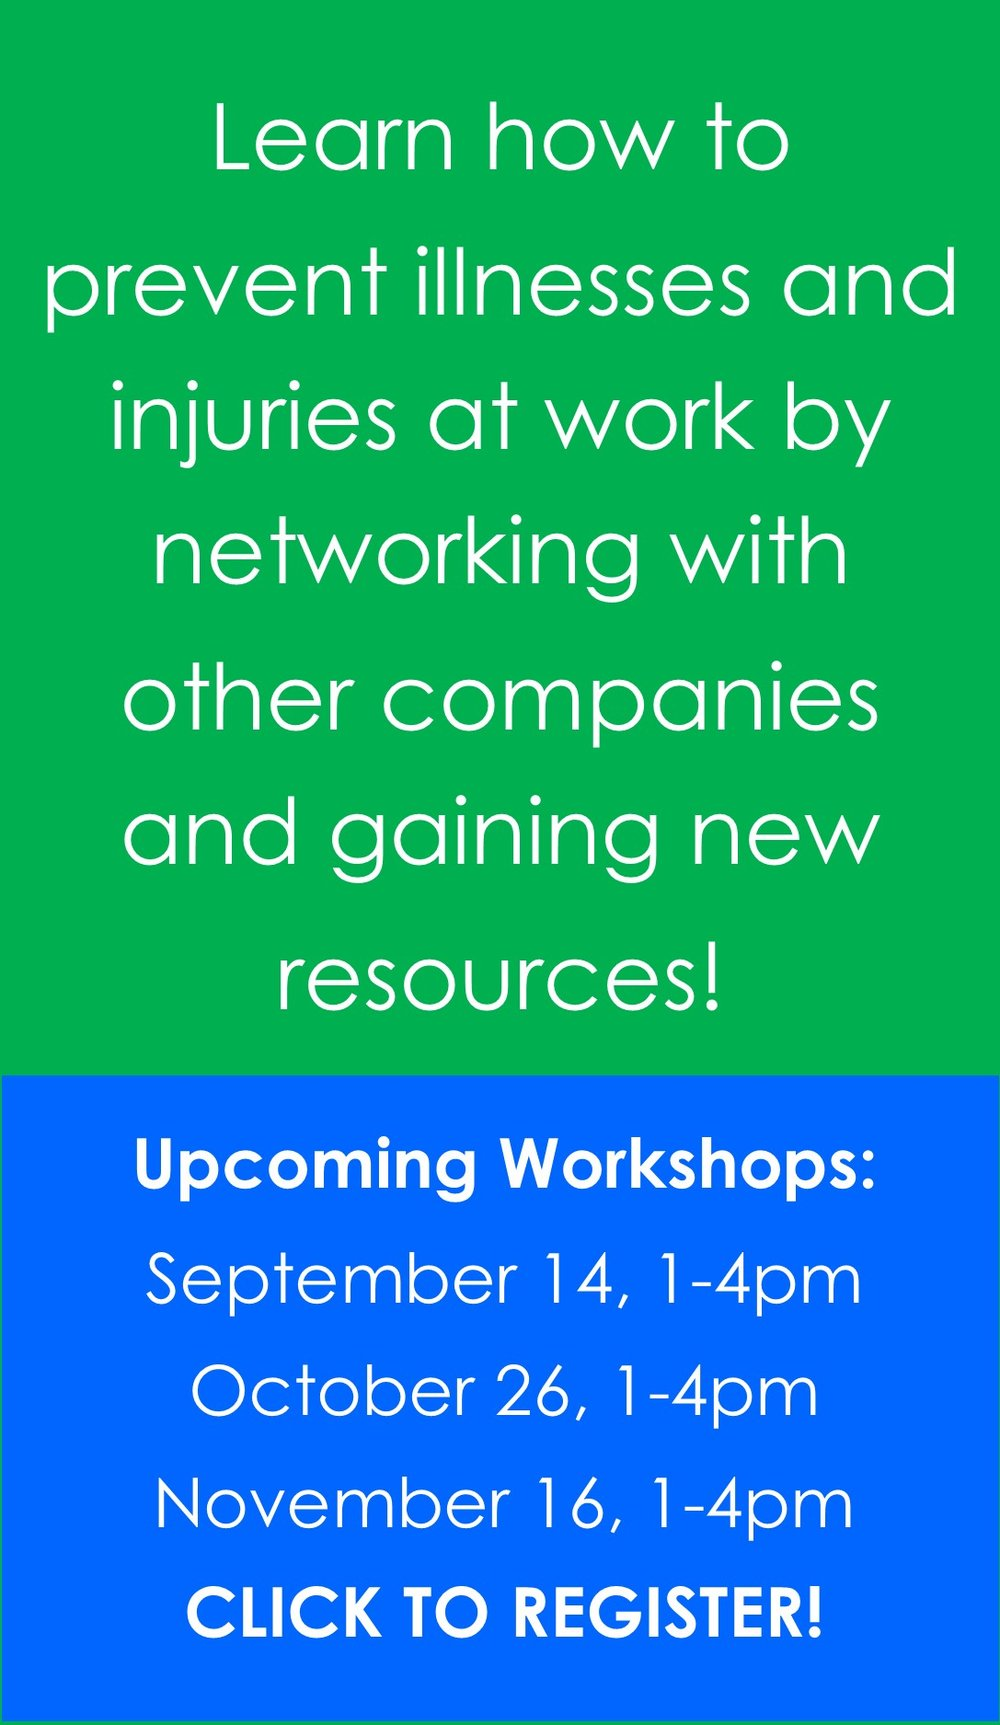 Upcoming Workshops:      September 14, 1-4pm      October 26, 1-4pm      November 16, 1-4pm